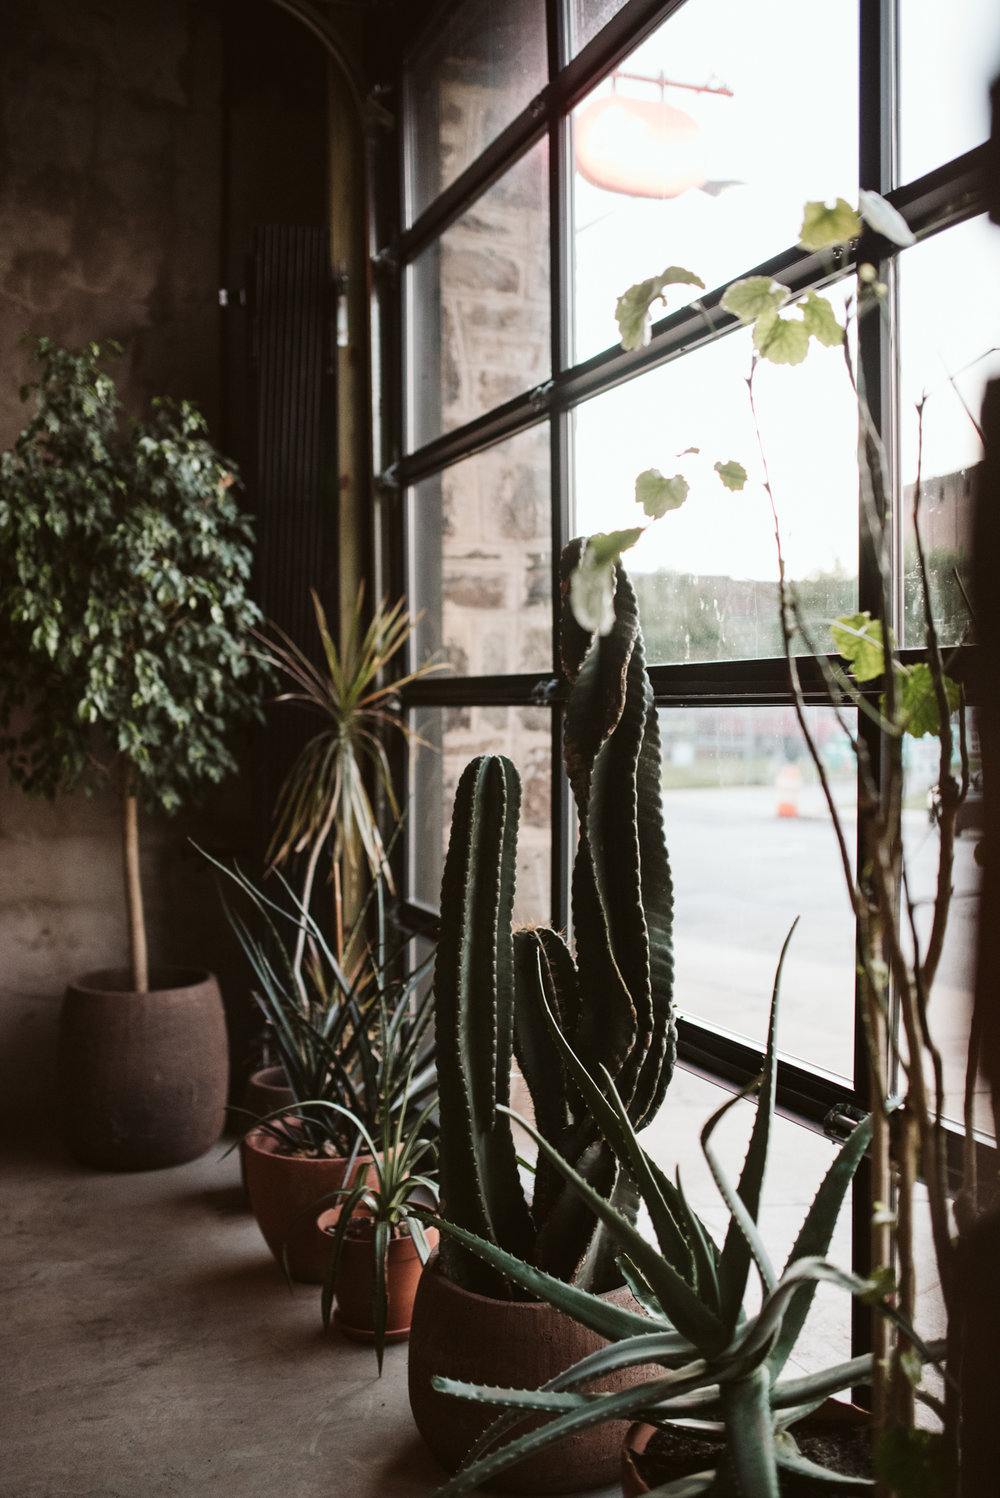 Outdoor Wedding, Casual, Simple, Baltimore, Maryland Wedding Photographer, Laid Back, September Wedding, Plants at Reception, Cactus, Perfect Lighting